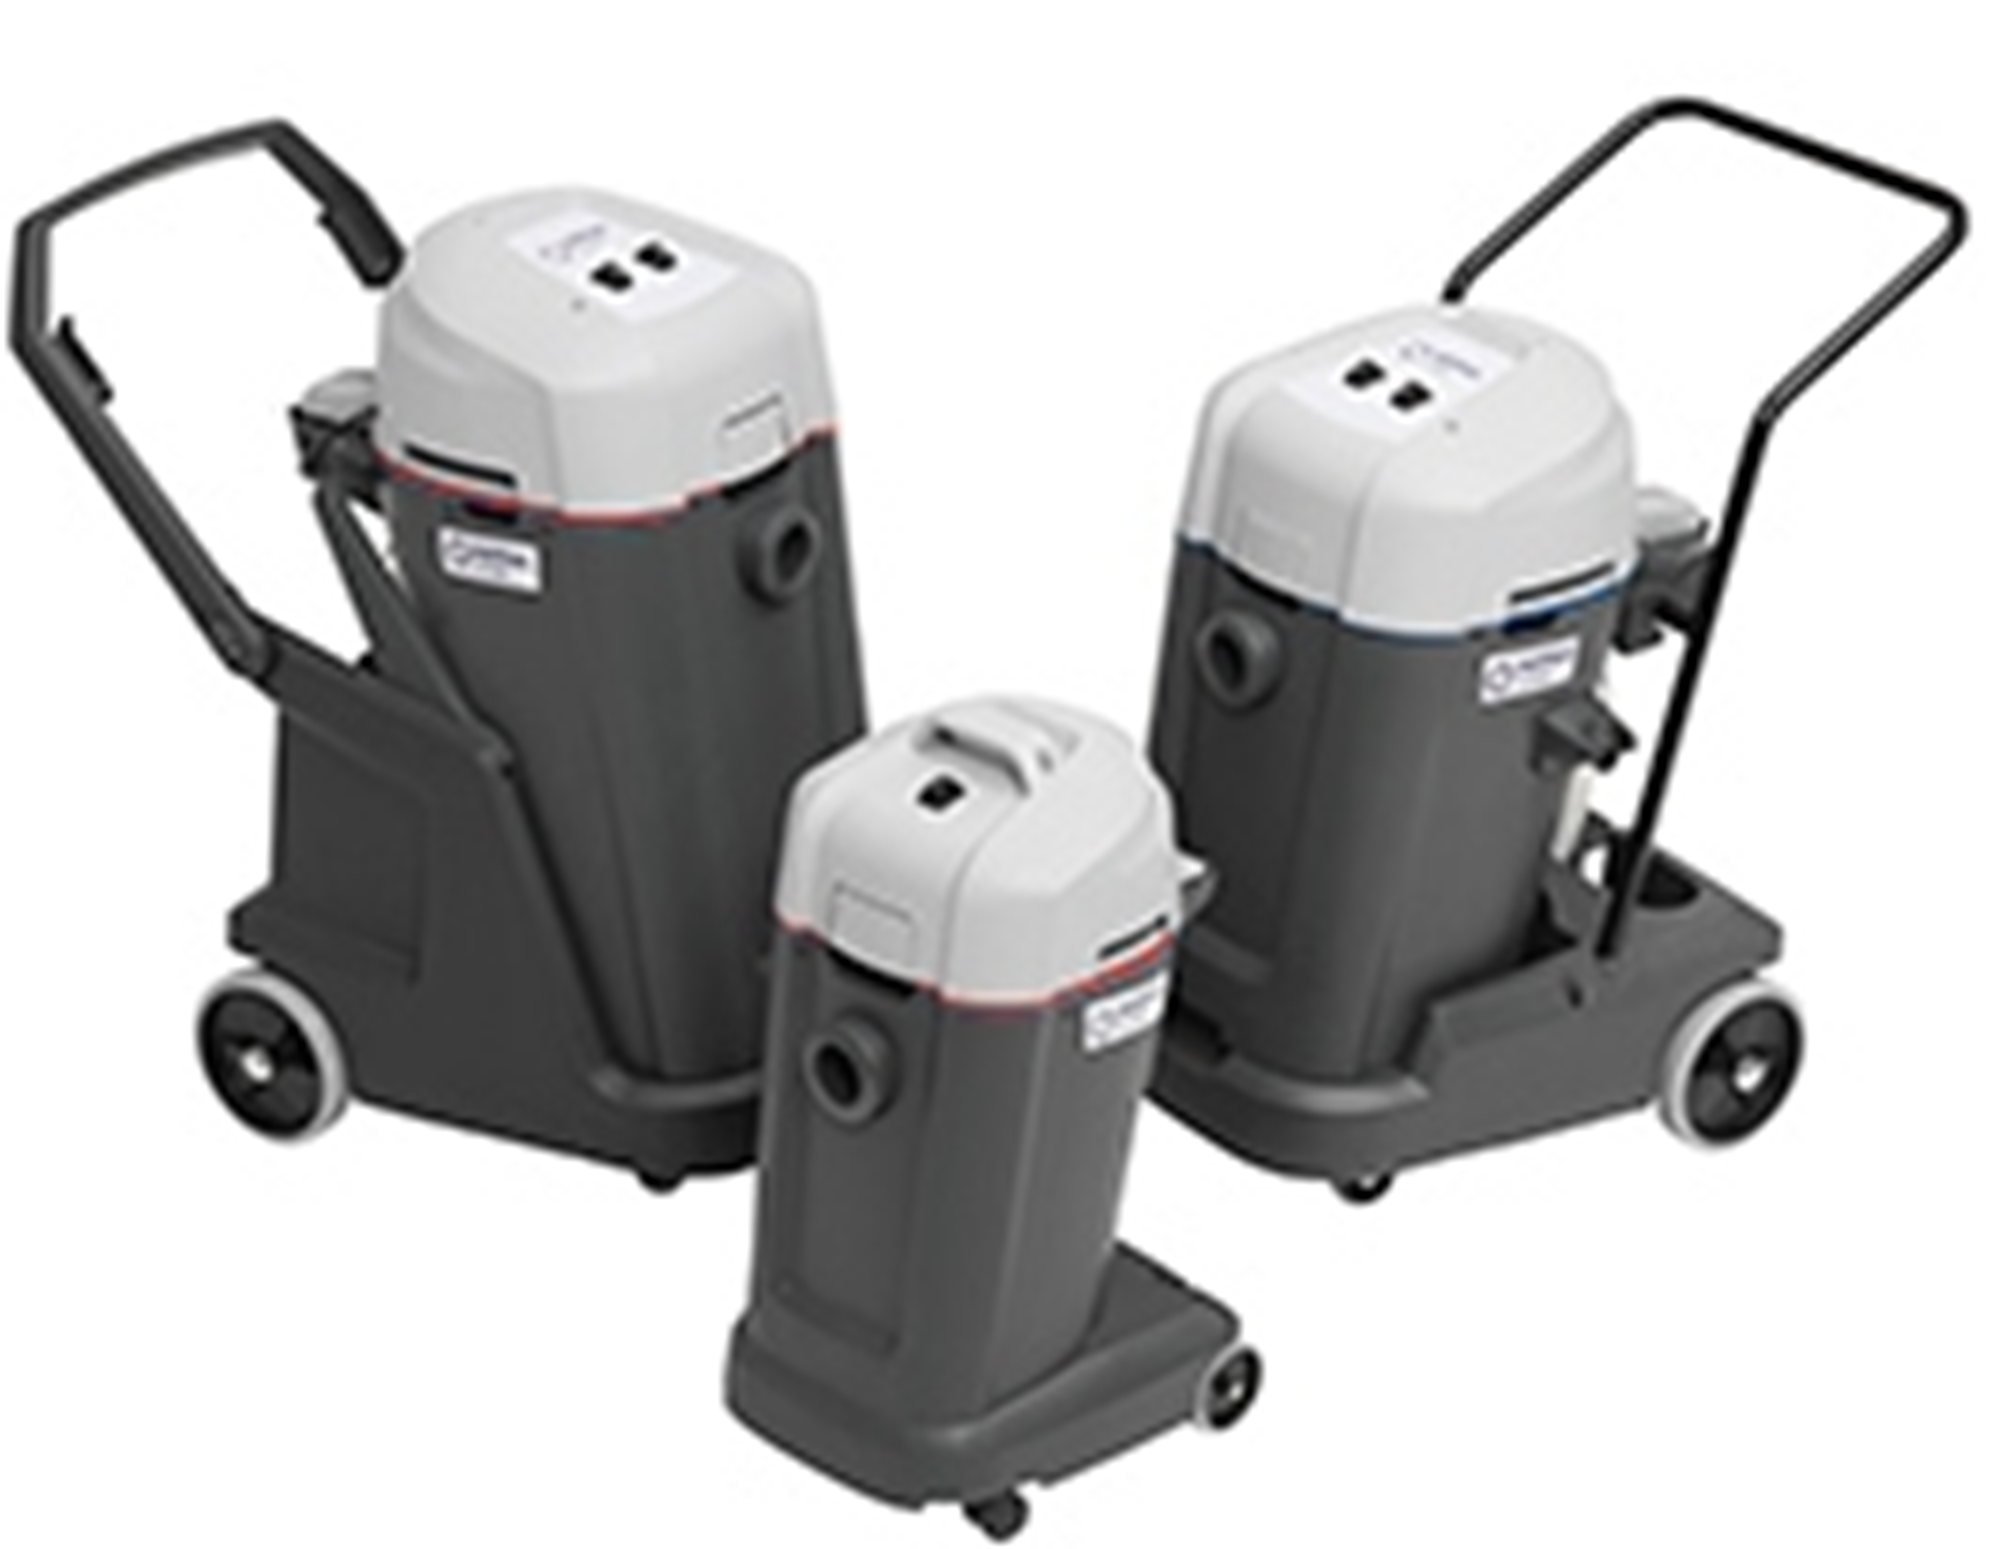 Product, Vacuum cleaners, Commercial vacuum cleaners, Wet and dry vacuum cleaners, Nilfisk, VL500 75-1 BSF 220-240V/50-60 EU